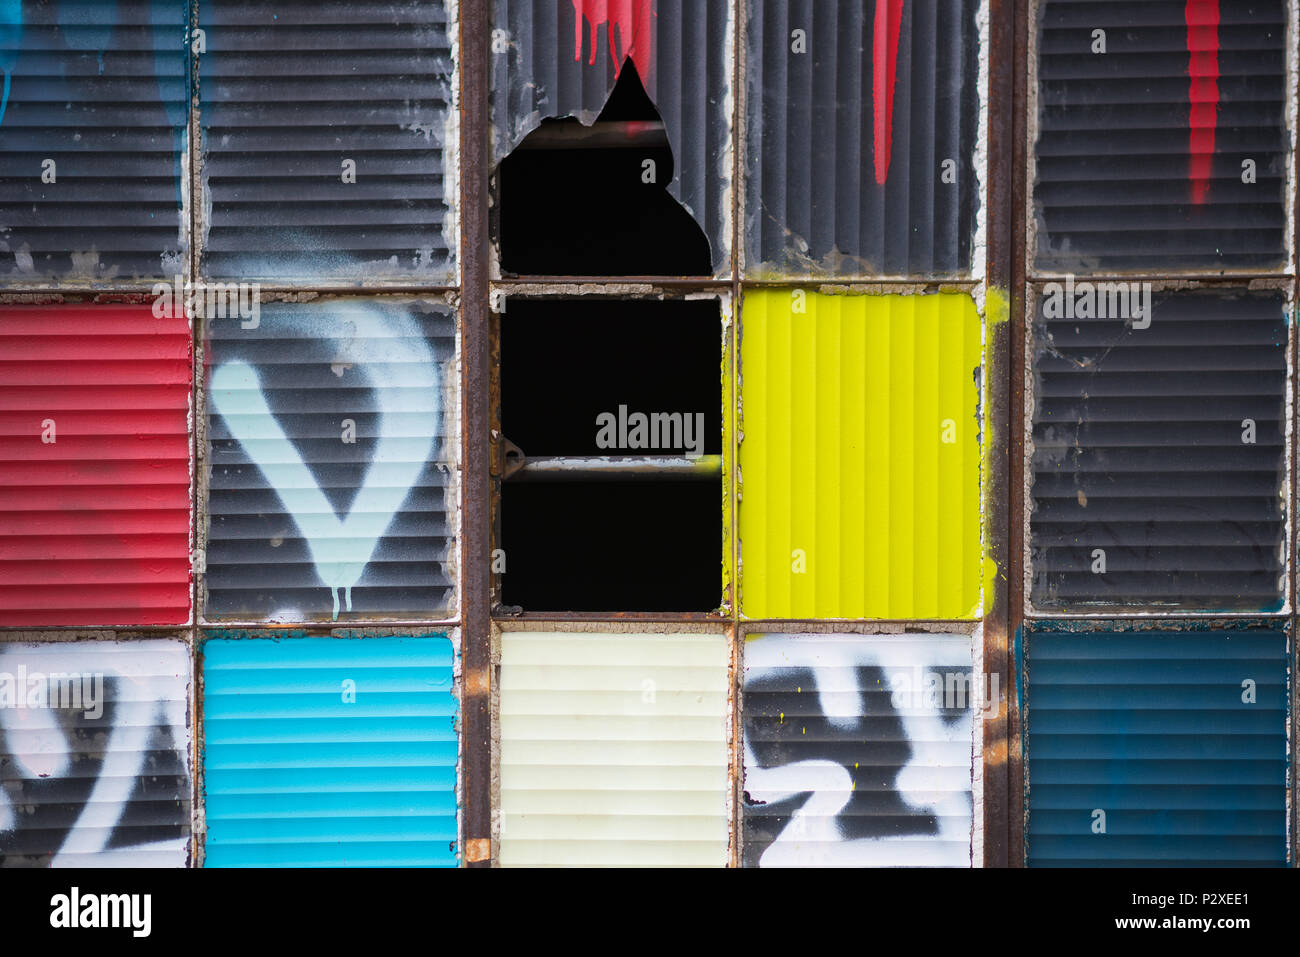 Broken urban window panes made artistic with paint - Stock Image